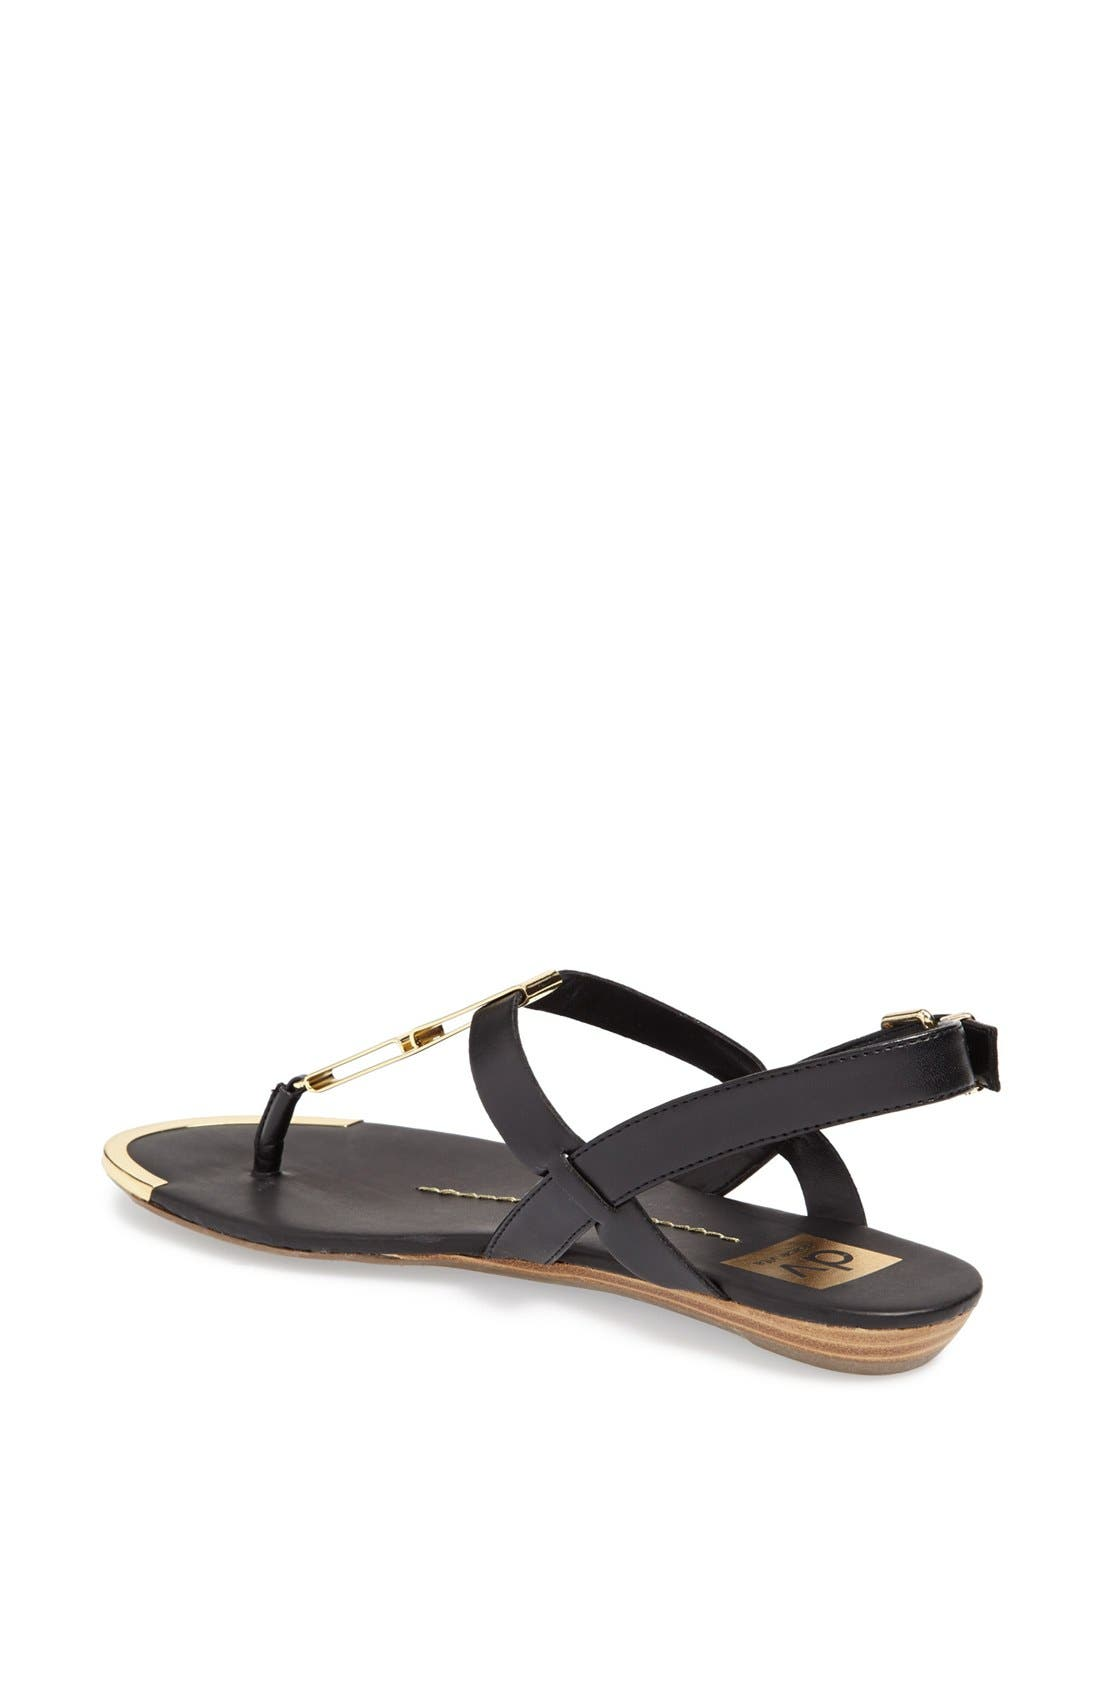 DV by Dolce Vita 'Abley' Thong Sandal,                             Alternate thumbnail 4, color,                             001